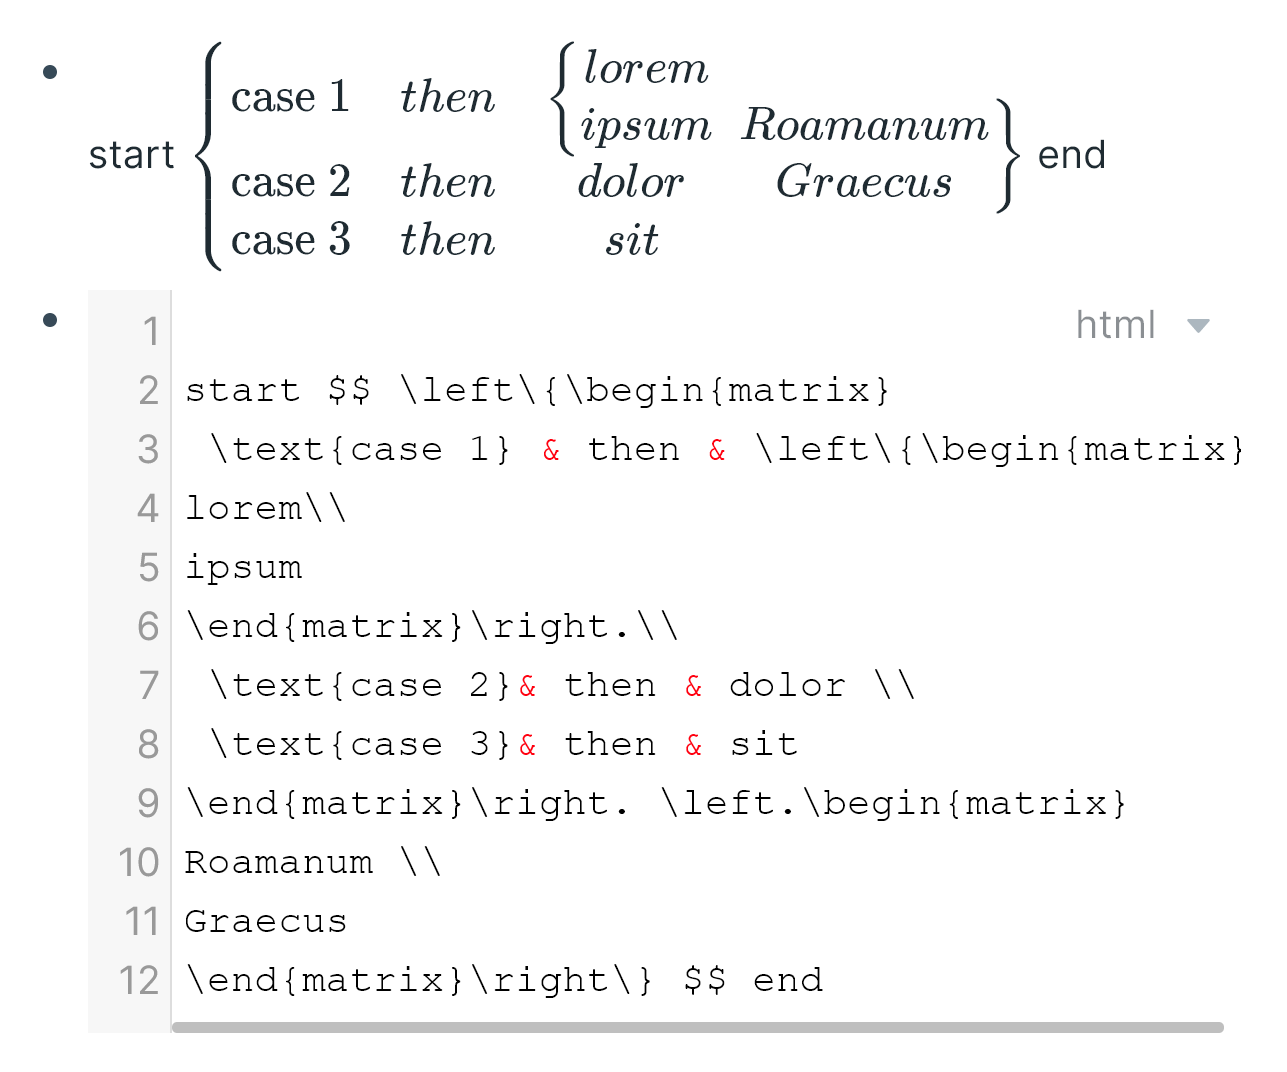 An insanely complicated nested matrices in LaTeX.